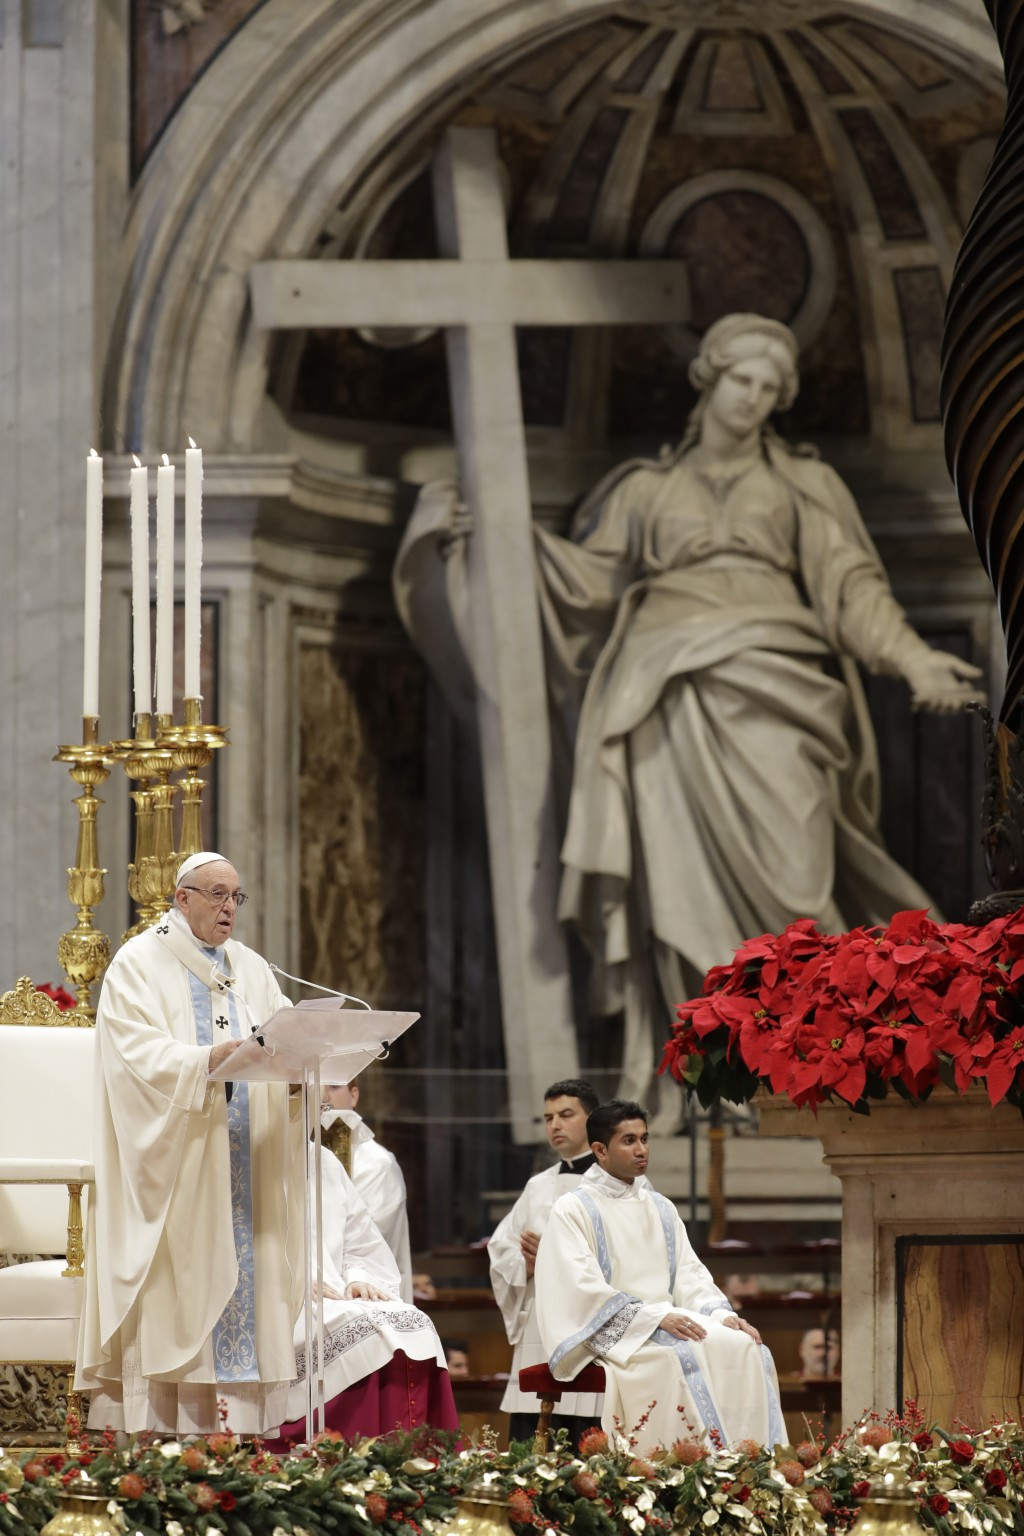 Pope Francis delivers his message as he celebrates a new year Mass in St. Peter's Basilica at the Vatican, Tuesday, Jan. 1, 2019. (AP Photo/Andrew Med